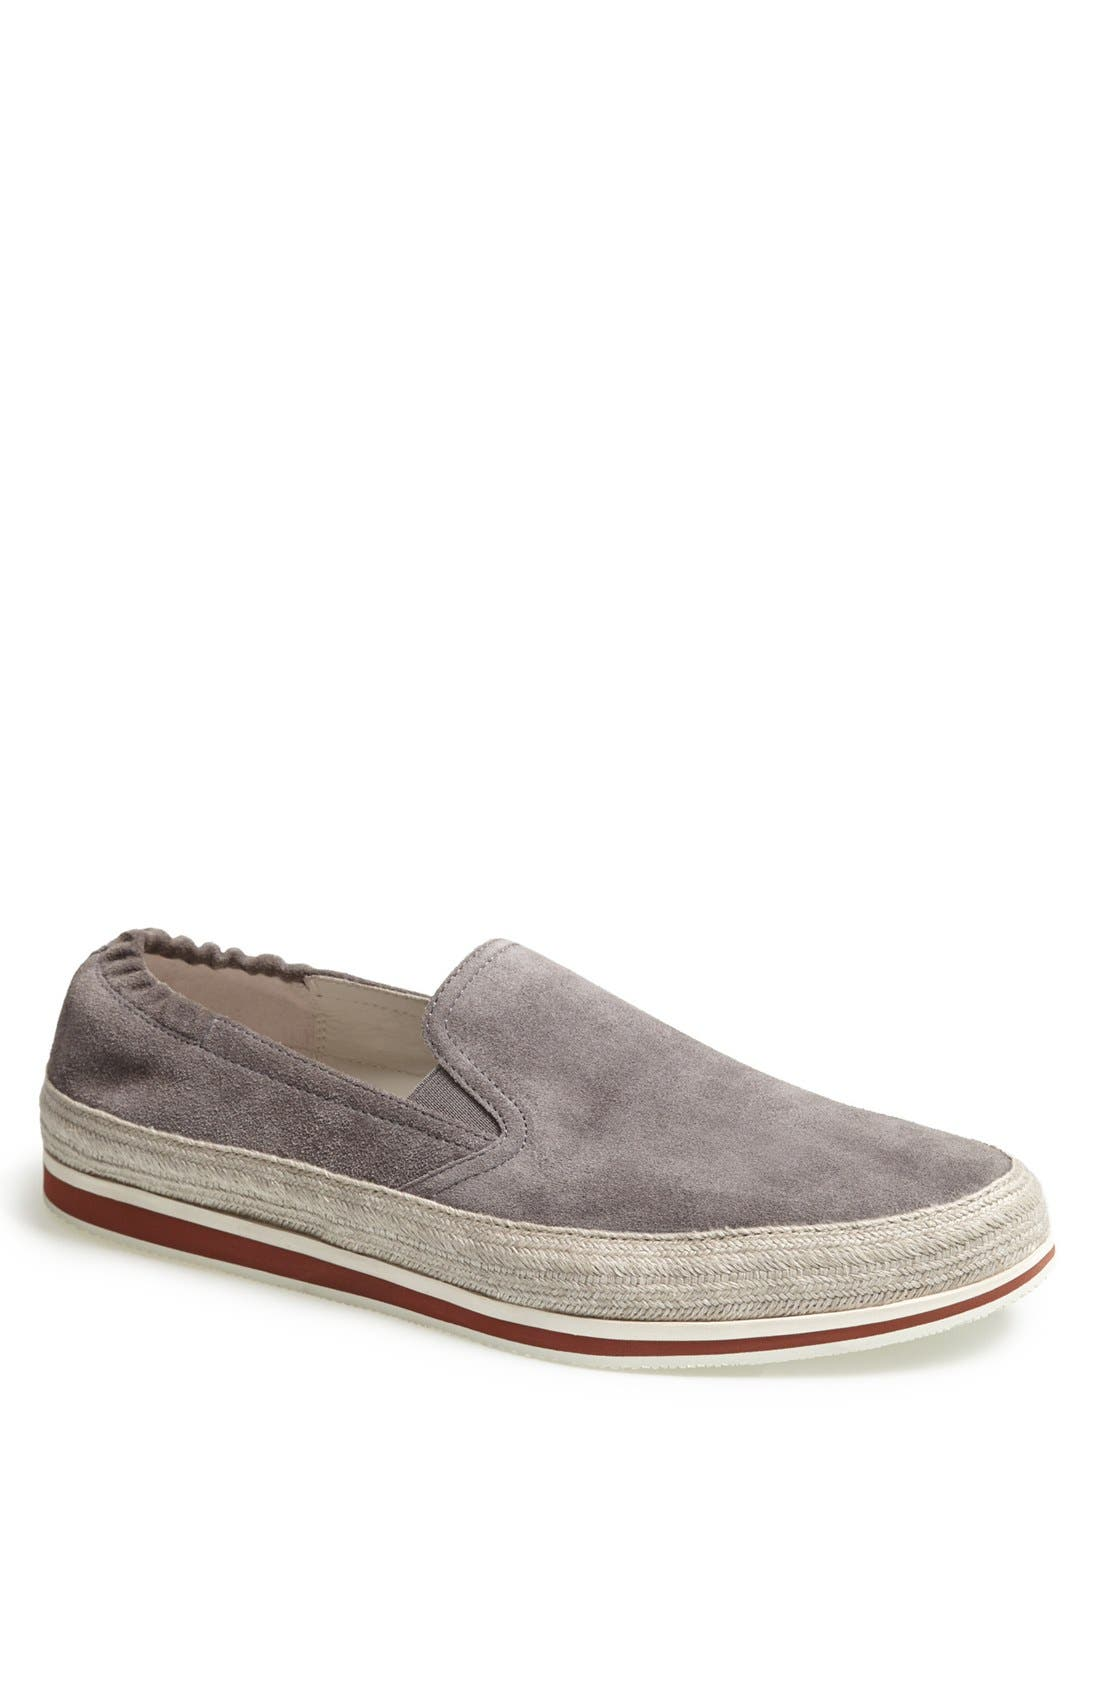 Espadrille Sneaker,                         Main,                         color, 033